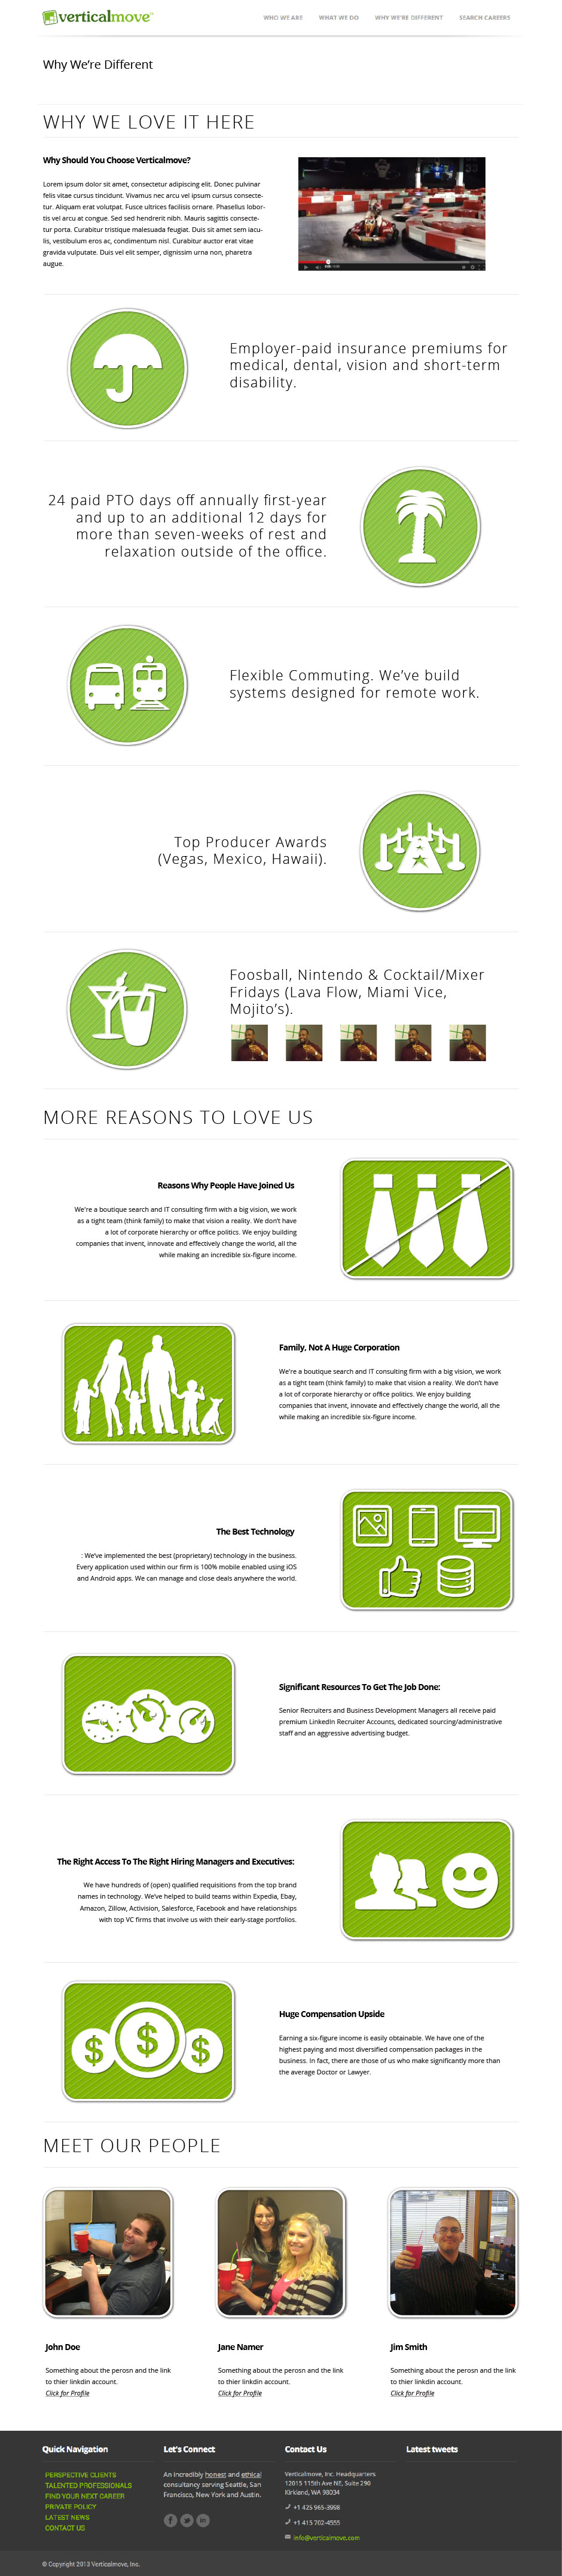 Verticalmove Landing Page GIANT Sample